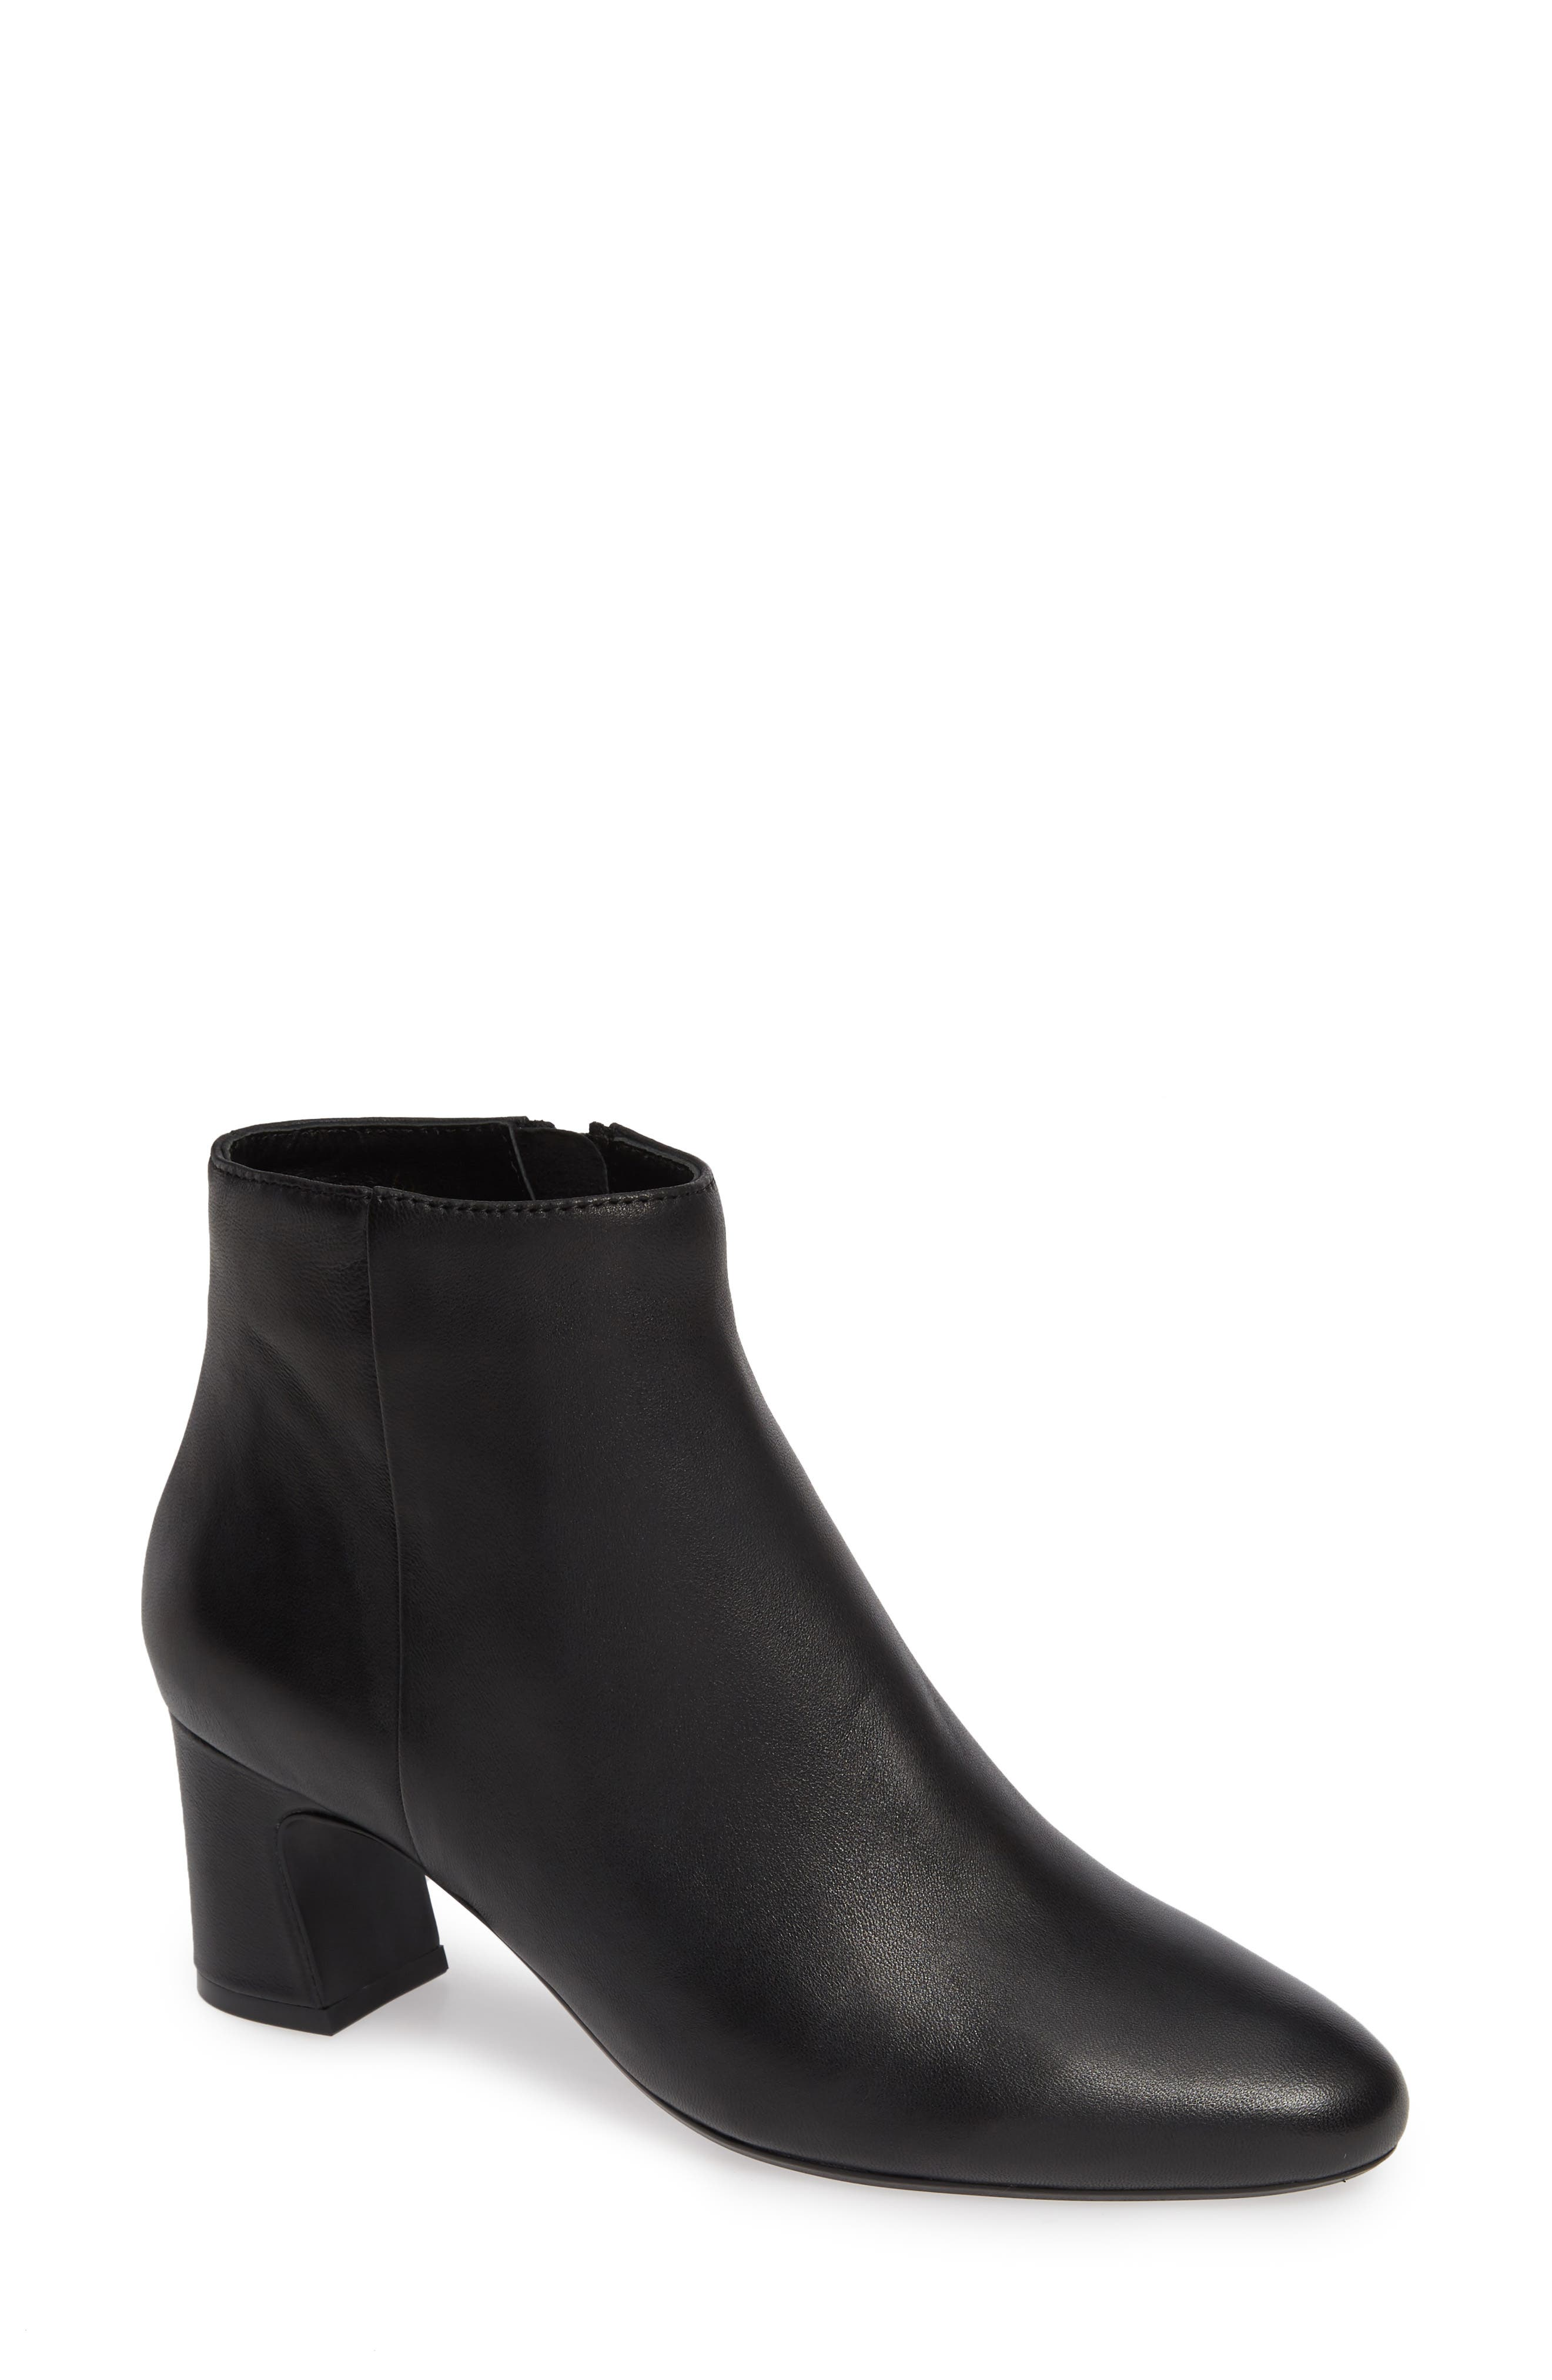 Dany Bootie,                         Main,                         color, BLACK LEATHER